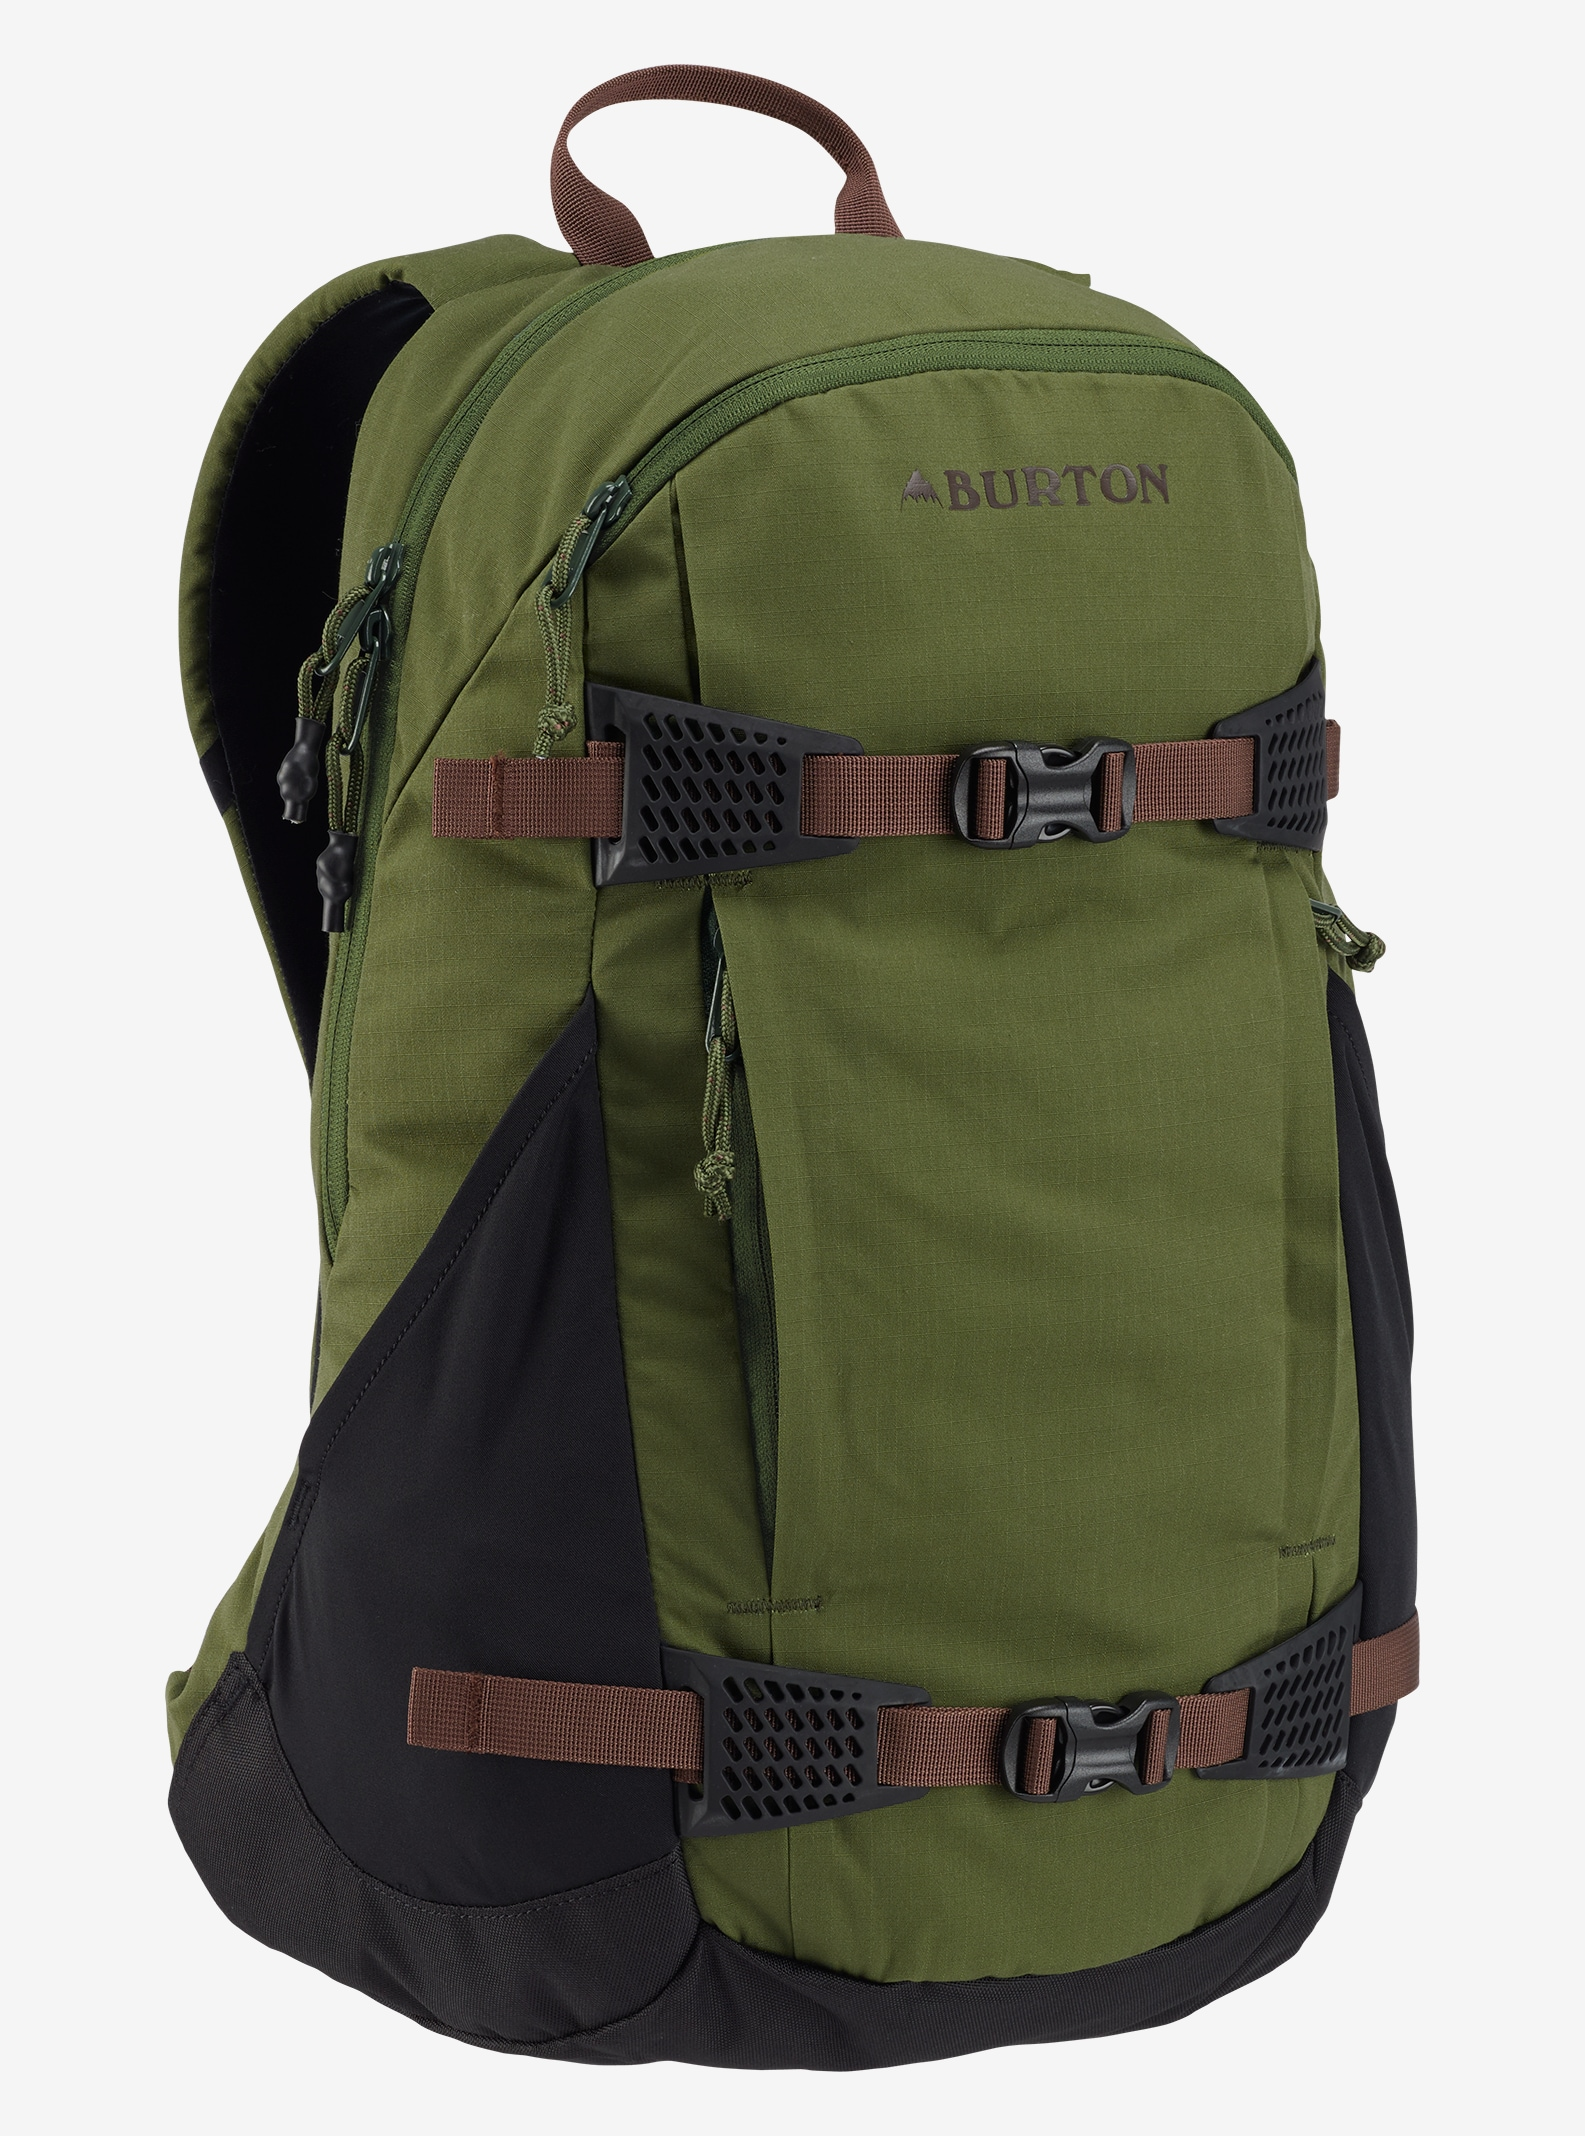 Burton Day Hiker 25L Backpack shown in Rifle Green Ripstop